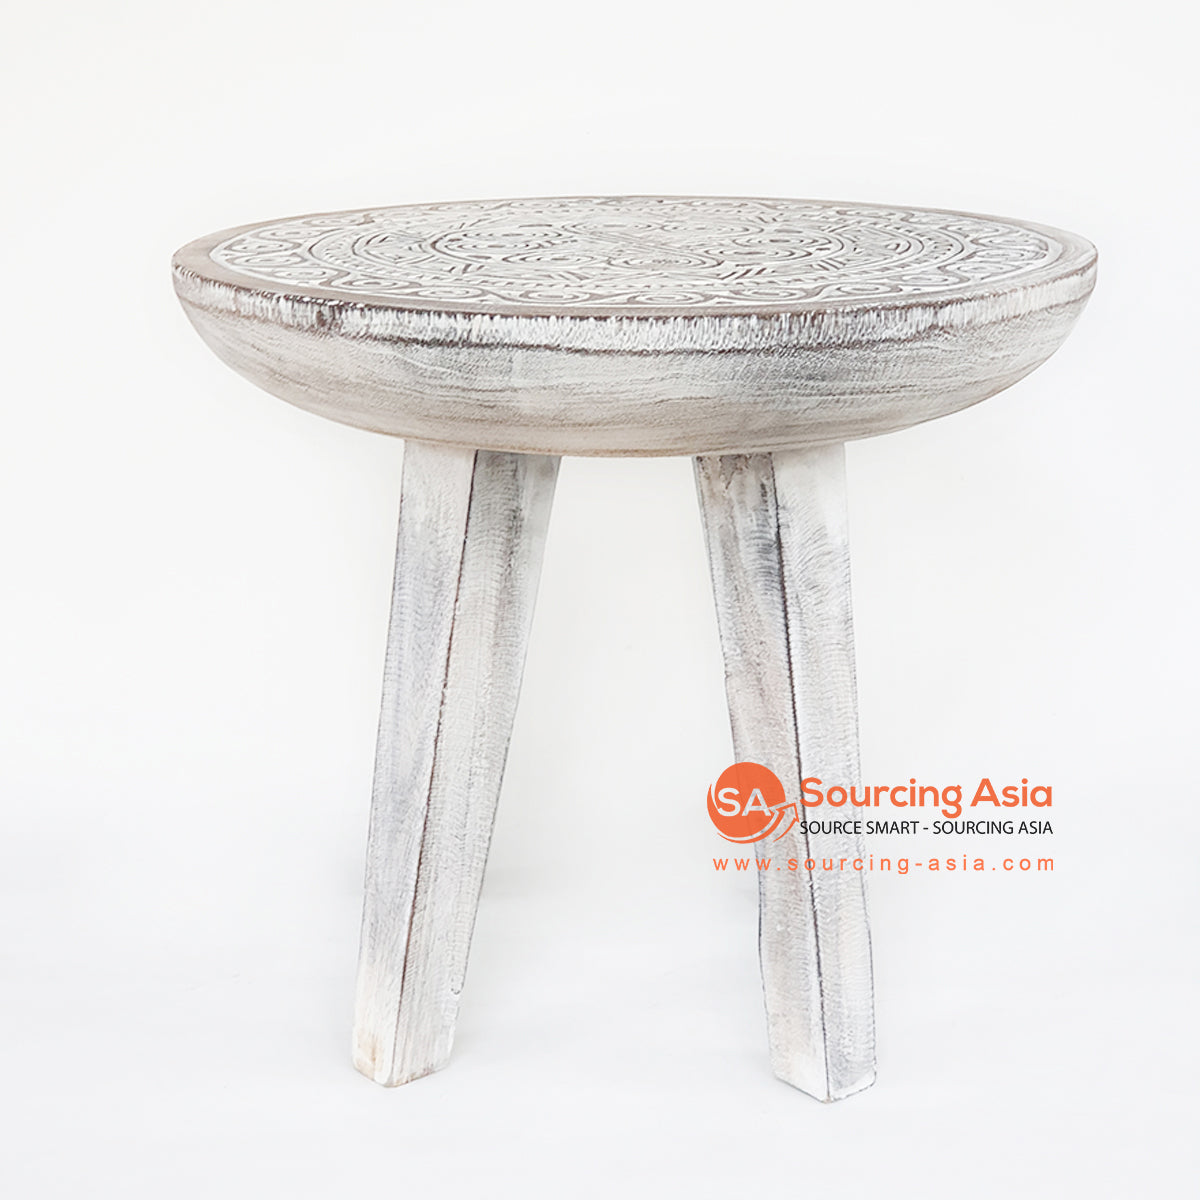 TKNC039 CARVED ETHNIC TRIBAL STYLE SIDE TABLE